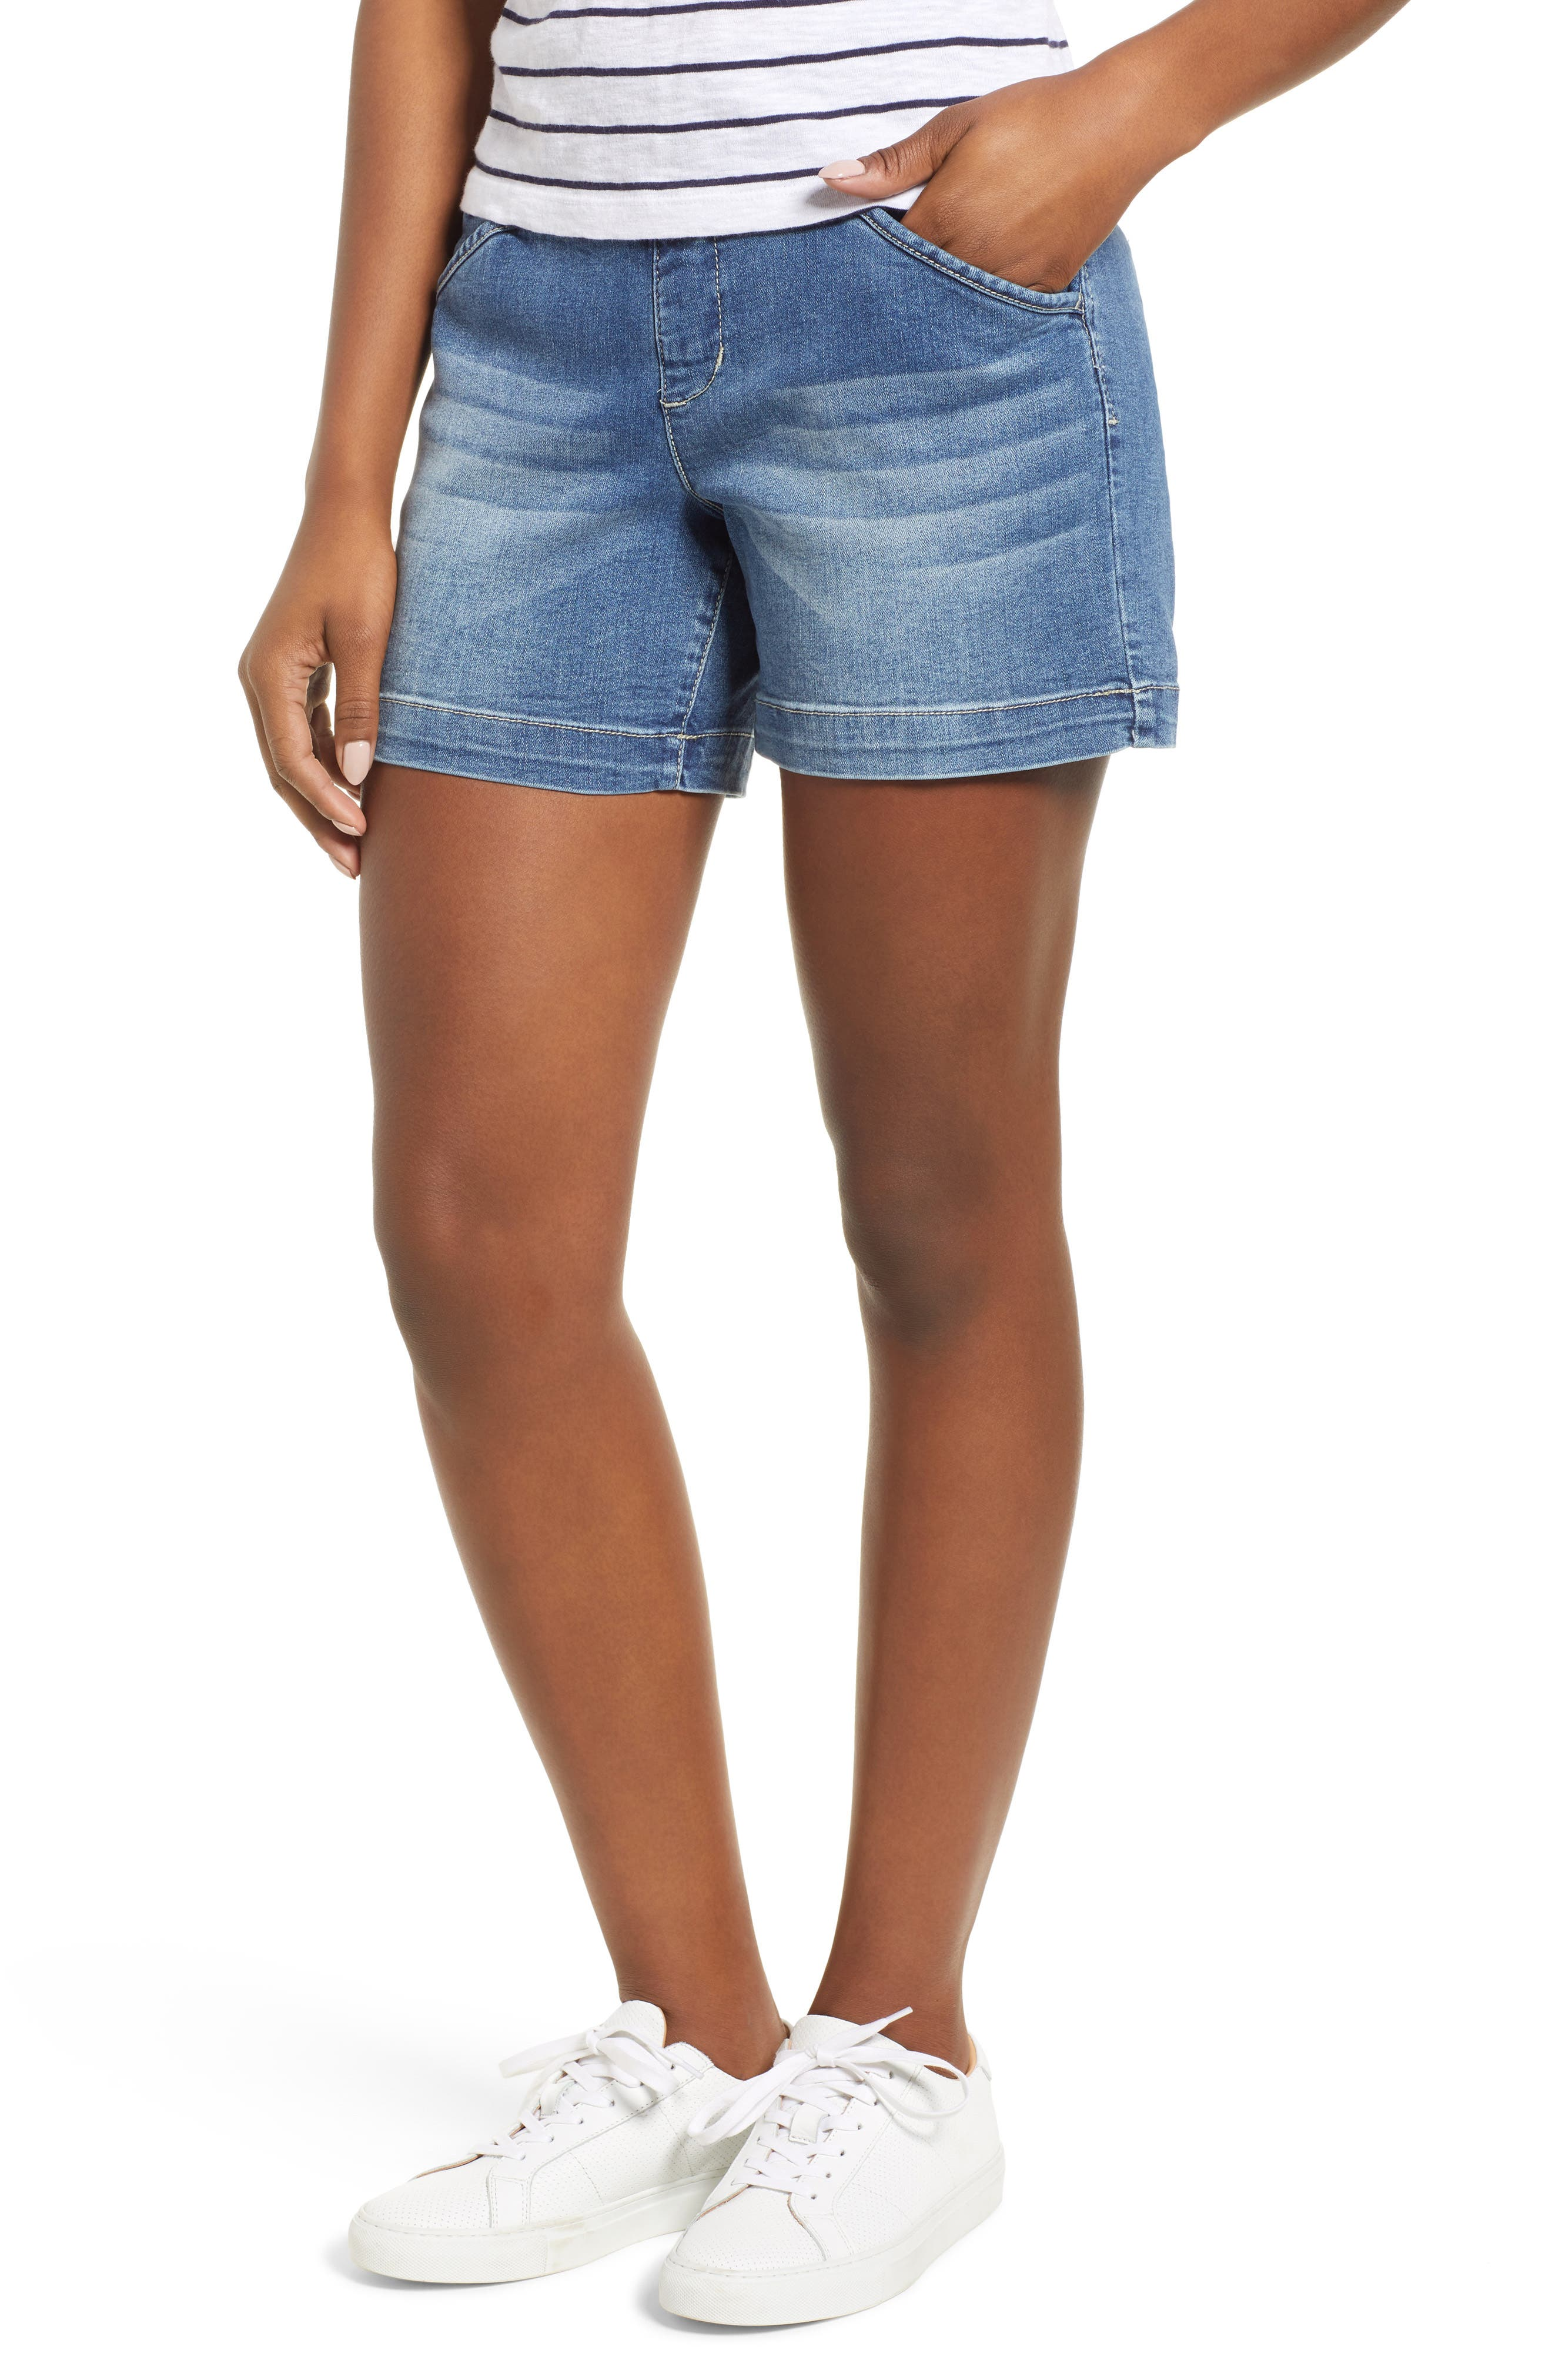 Ainsley 5 Denim Shorts,                             Main thumbnail 1, color,                             Med Indigo